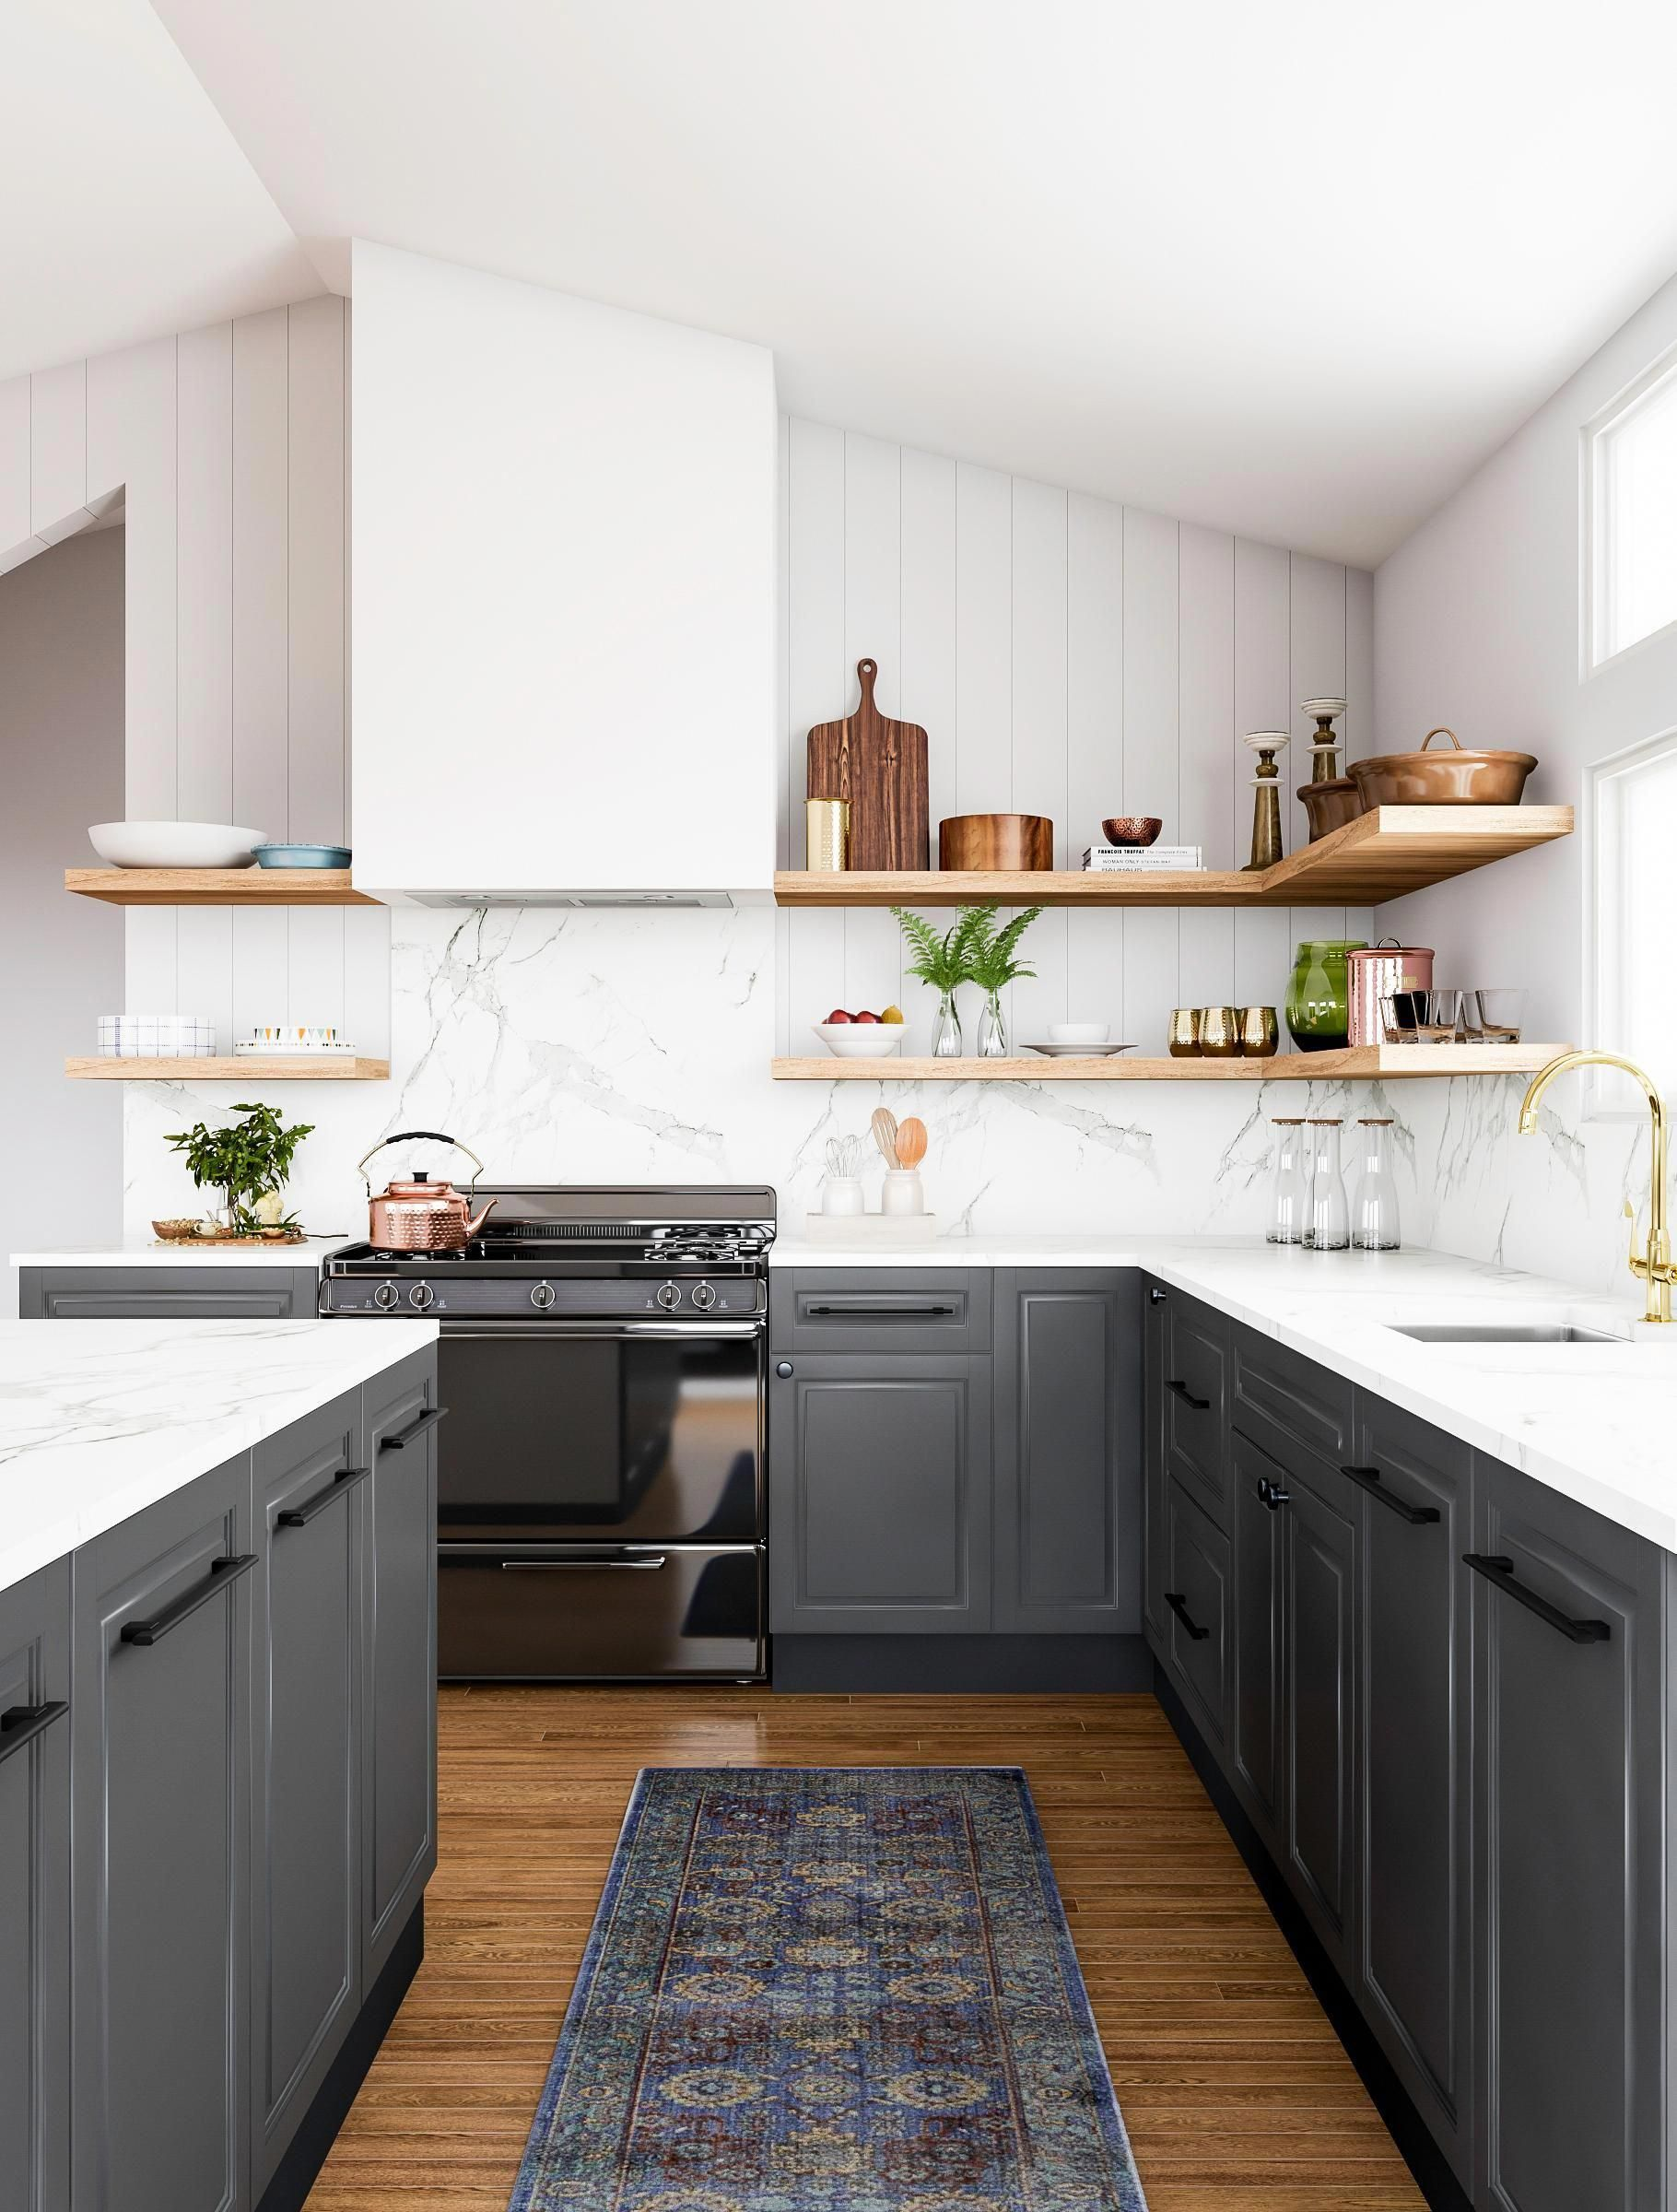 Love The High Contrast Look We Do Too Especially When It S Used In Unexpected Ways Like This K New Kitchen Cabinets Kitchen Renovation Kitchen Inspirations